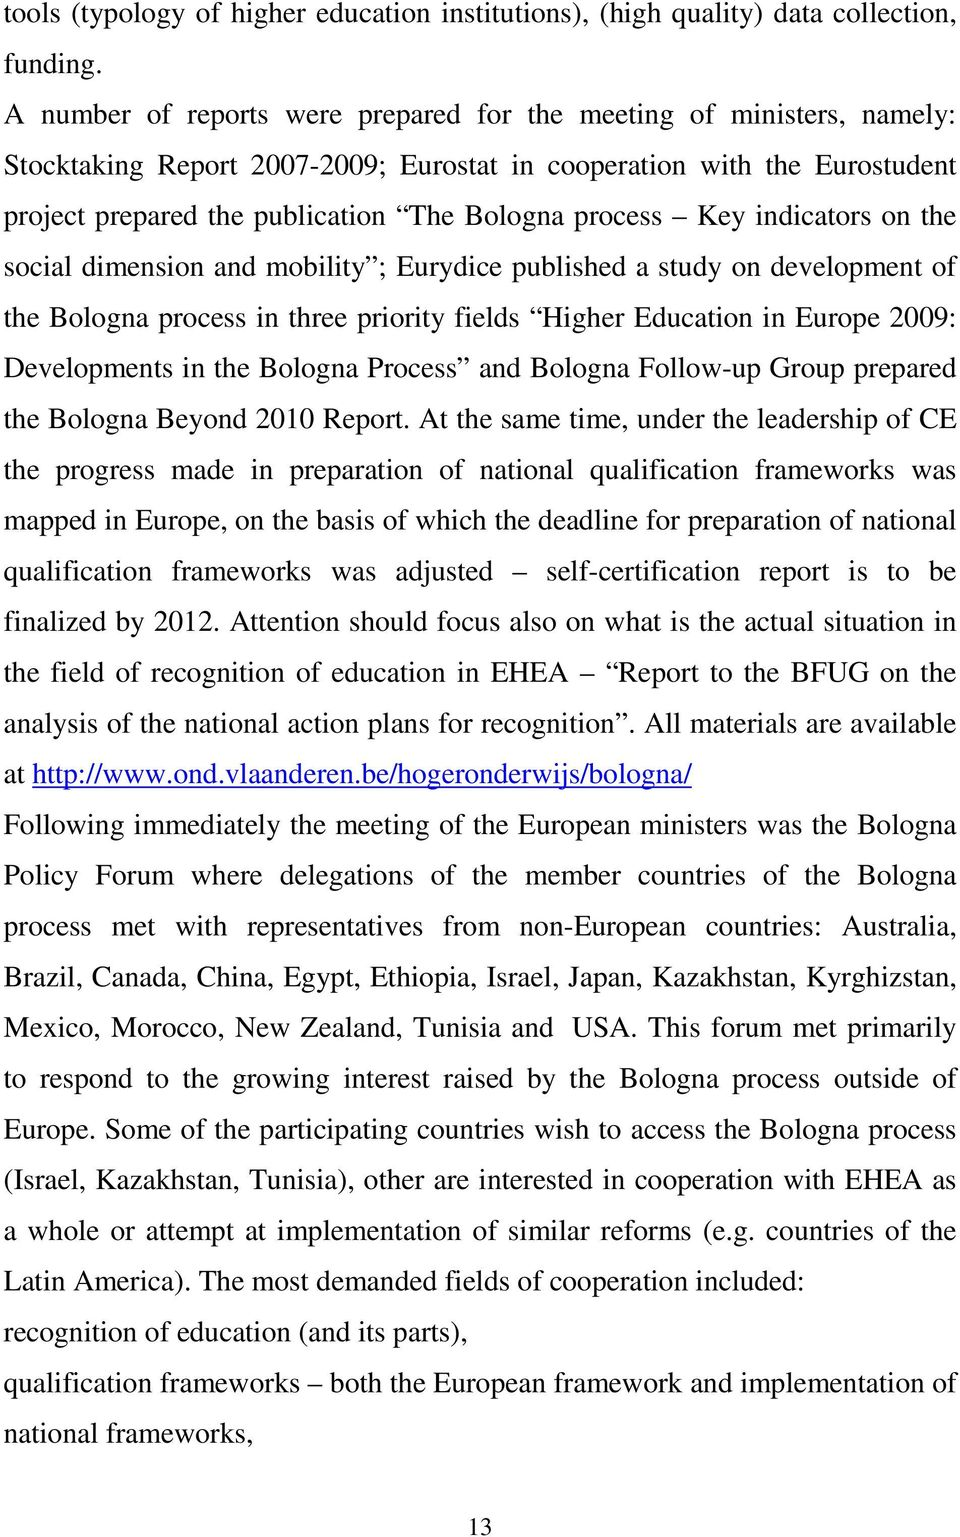 Key indicators on the social dimension and mobility ; Eurydice published a study on development of the Bologna process in three priority fields Higher Education in Europe 2009: Developments in the